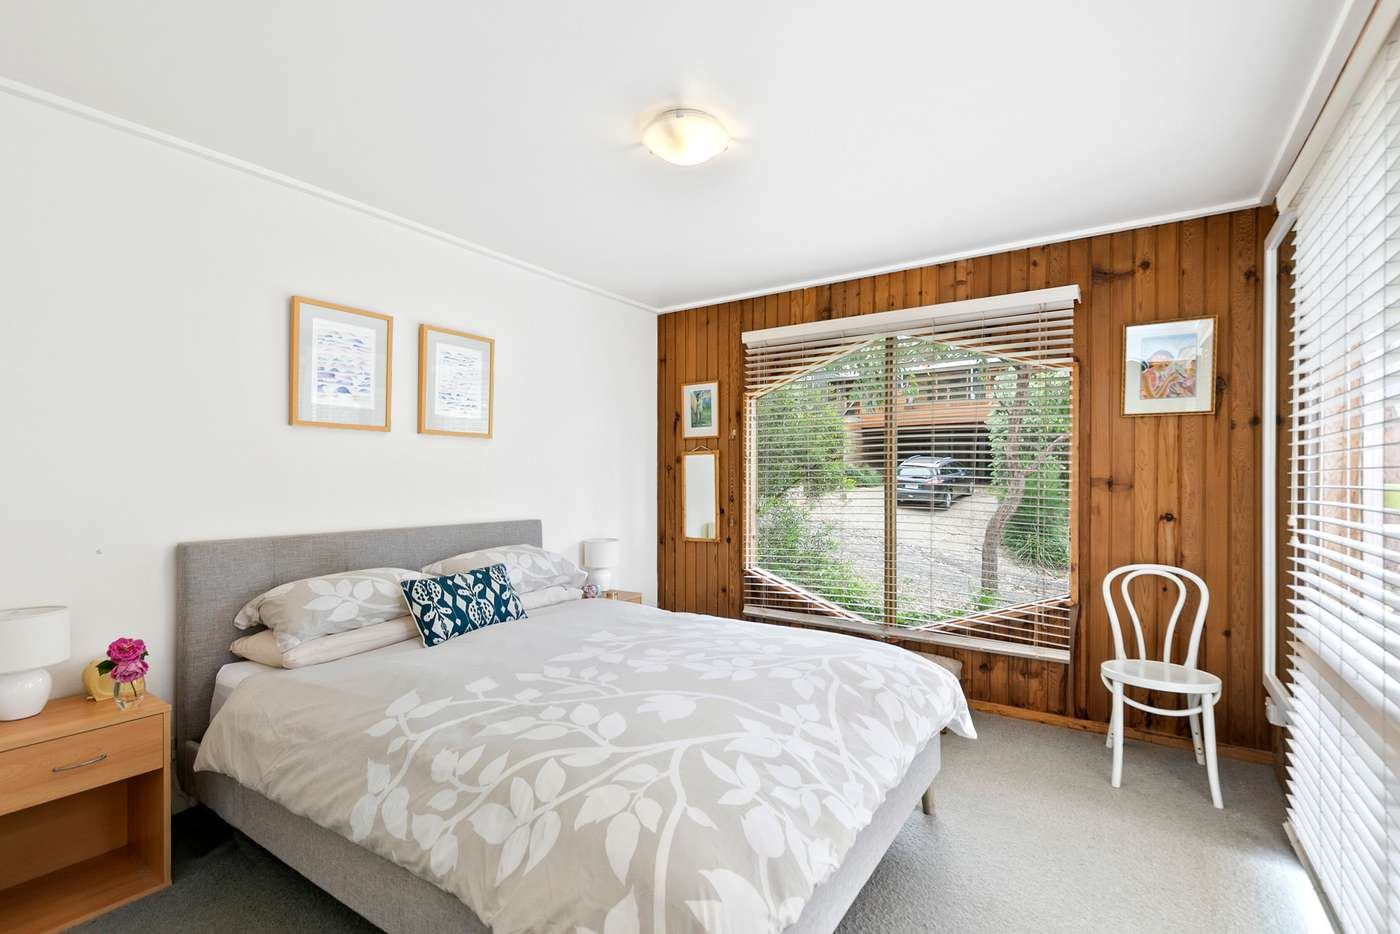 Fifth view of Homely house listing, 29 Belvedere Terrace, Lorne VIC 3232